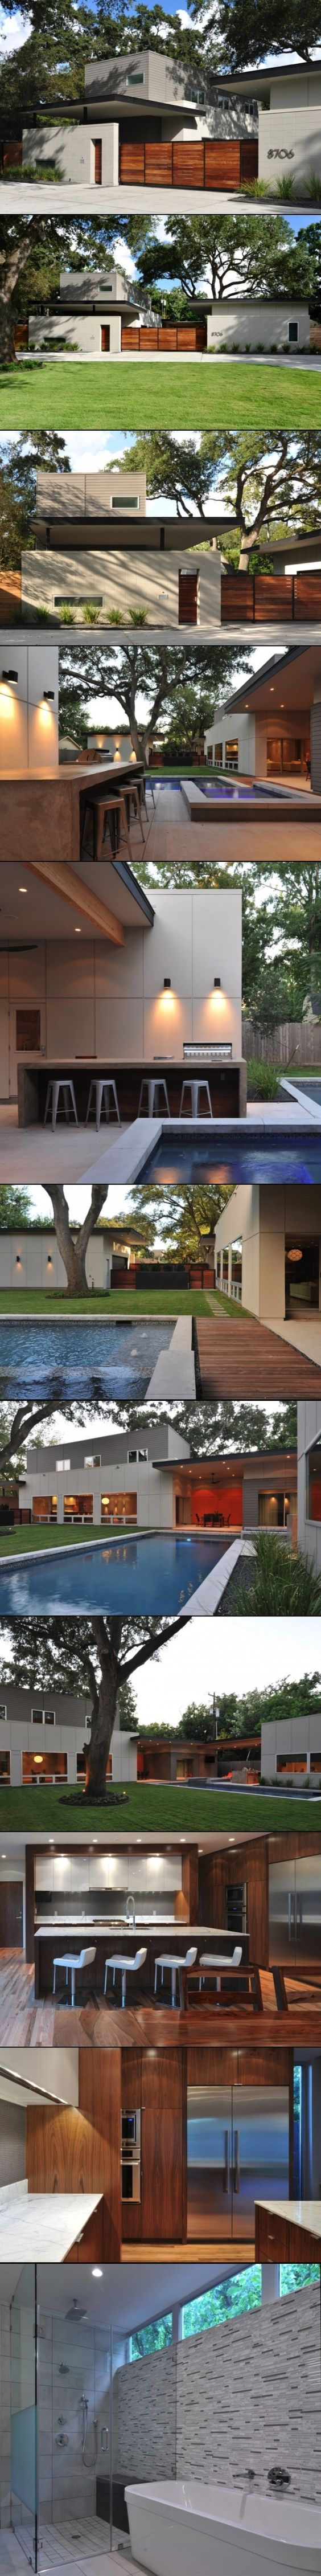 Spring Valley House by StudioM Houston-based rchitectural firm ... - ^